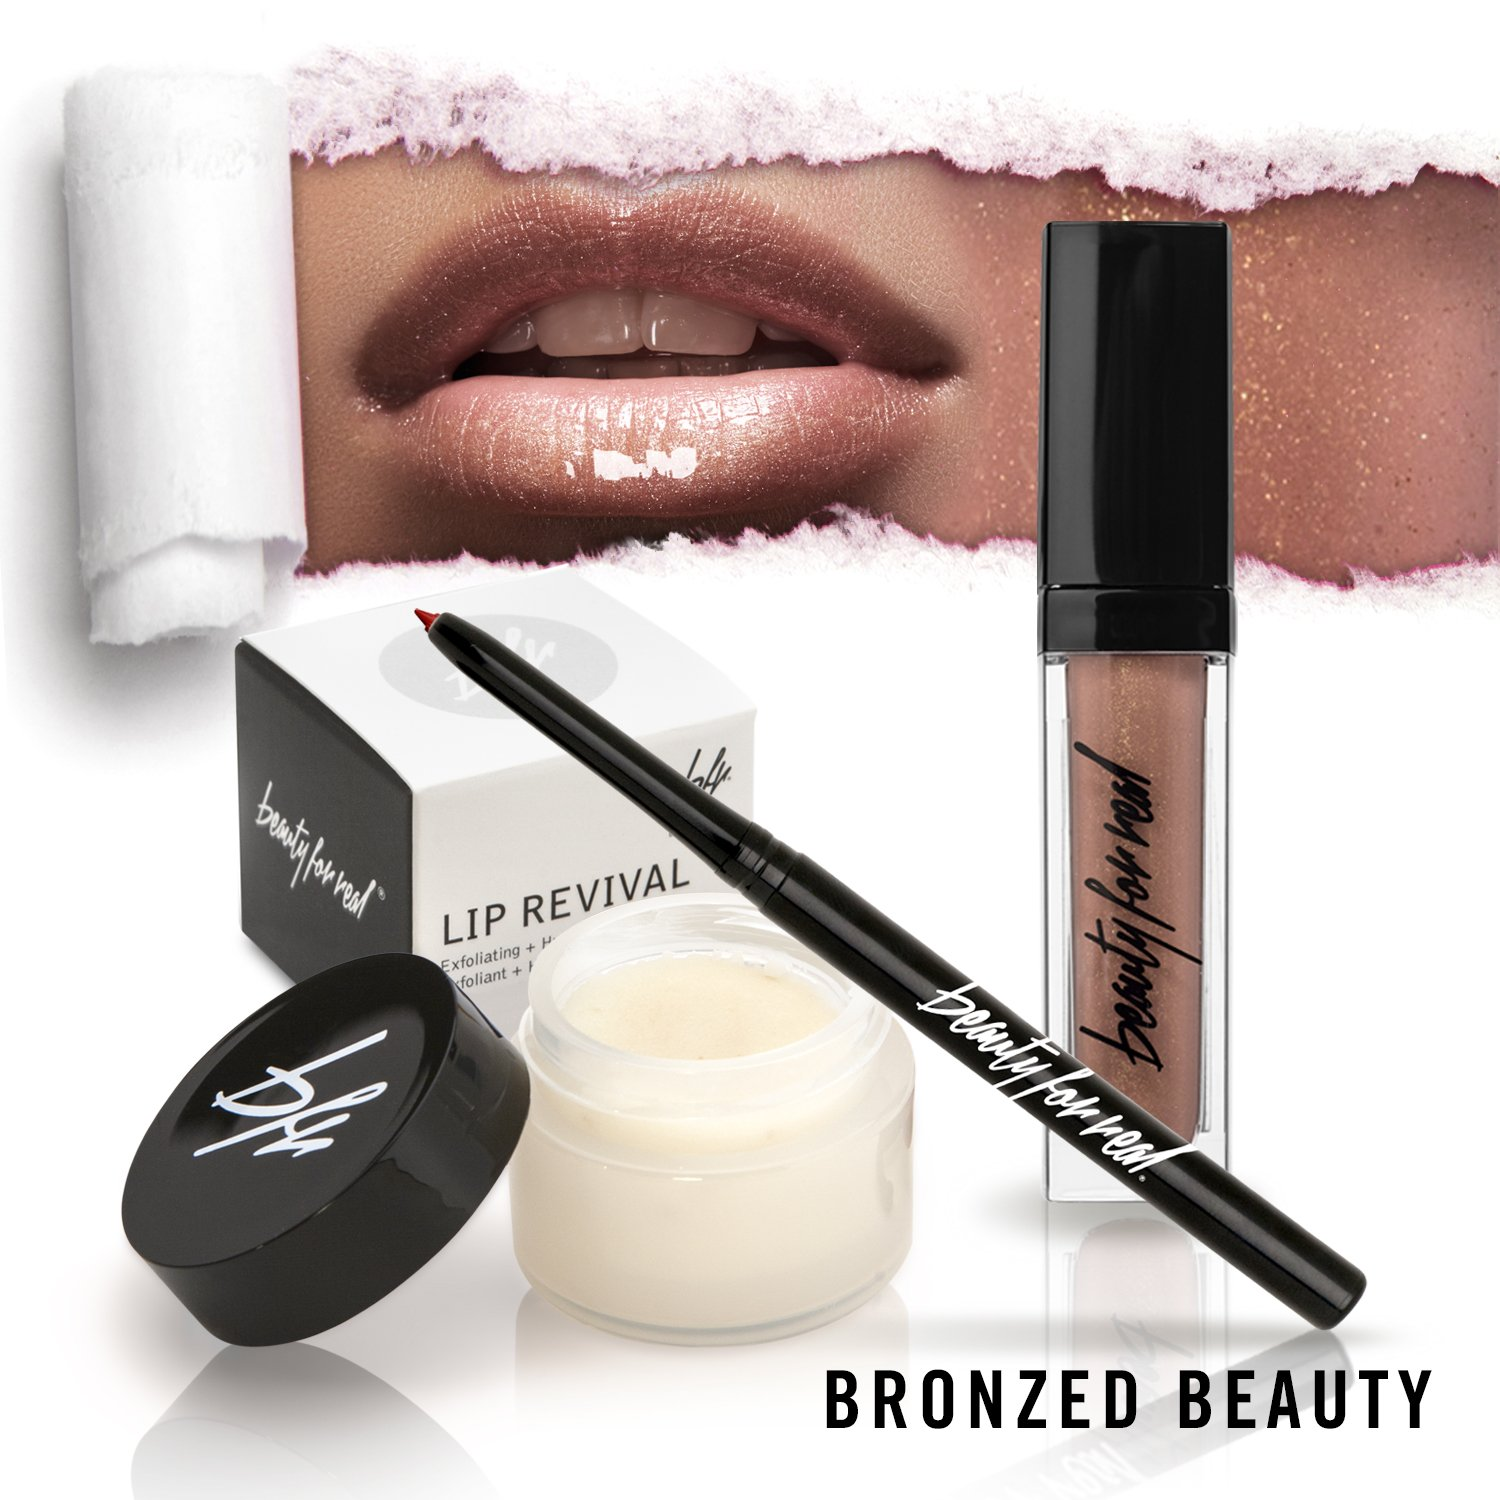 Perfect Pout Lip Set Beauty For Real Lip Revival Exfoliating and Hydrating Lip Scrub, D-fine Universal Lip Liner and Lip Gloss (Bronzed Warm Nude)